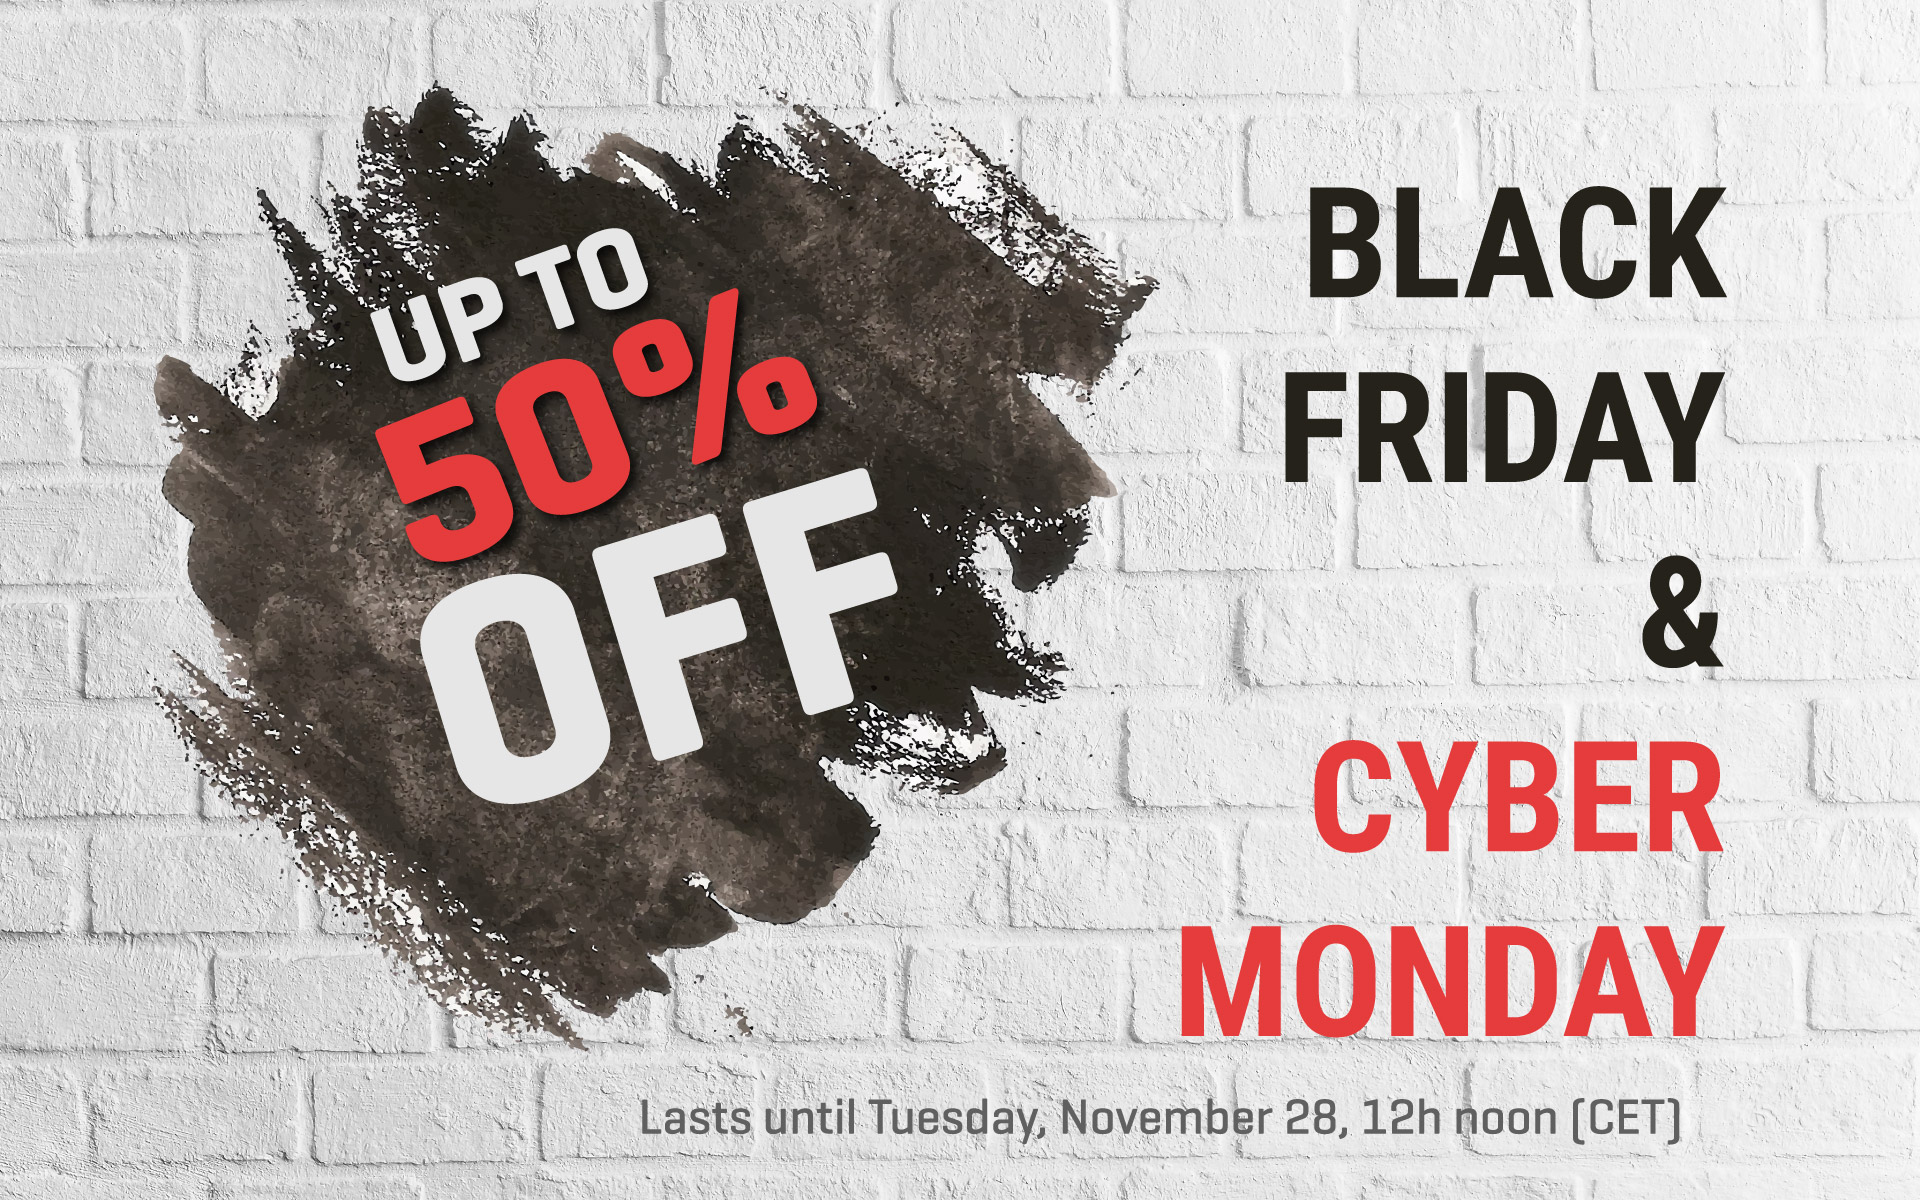 Black Friday/Cyber Monday special offer - up to 50% OFF